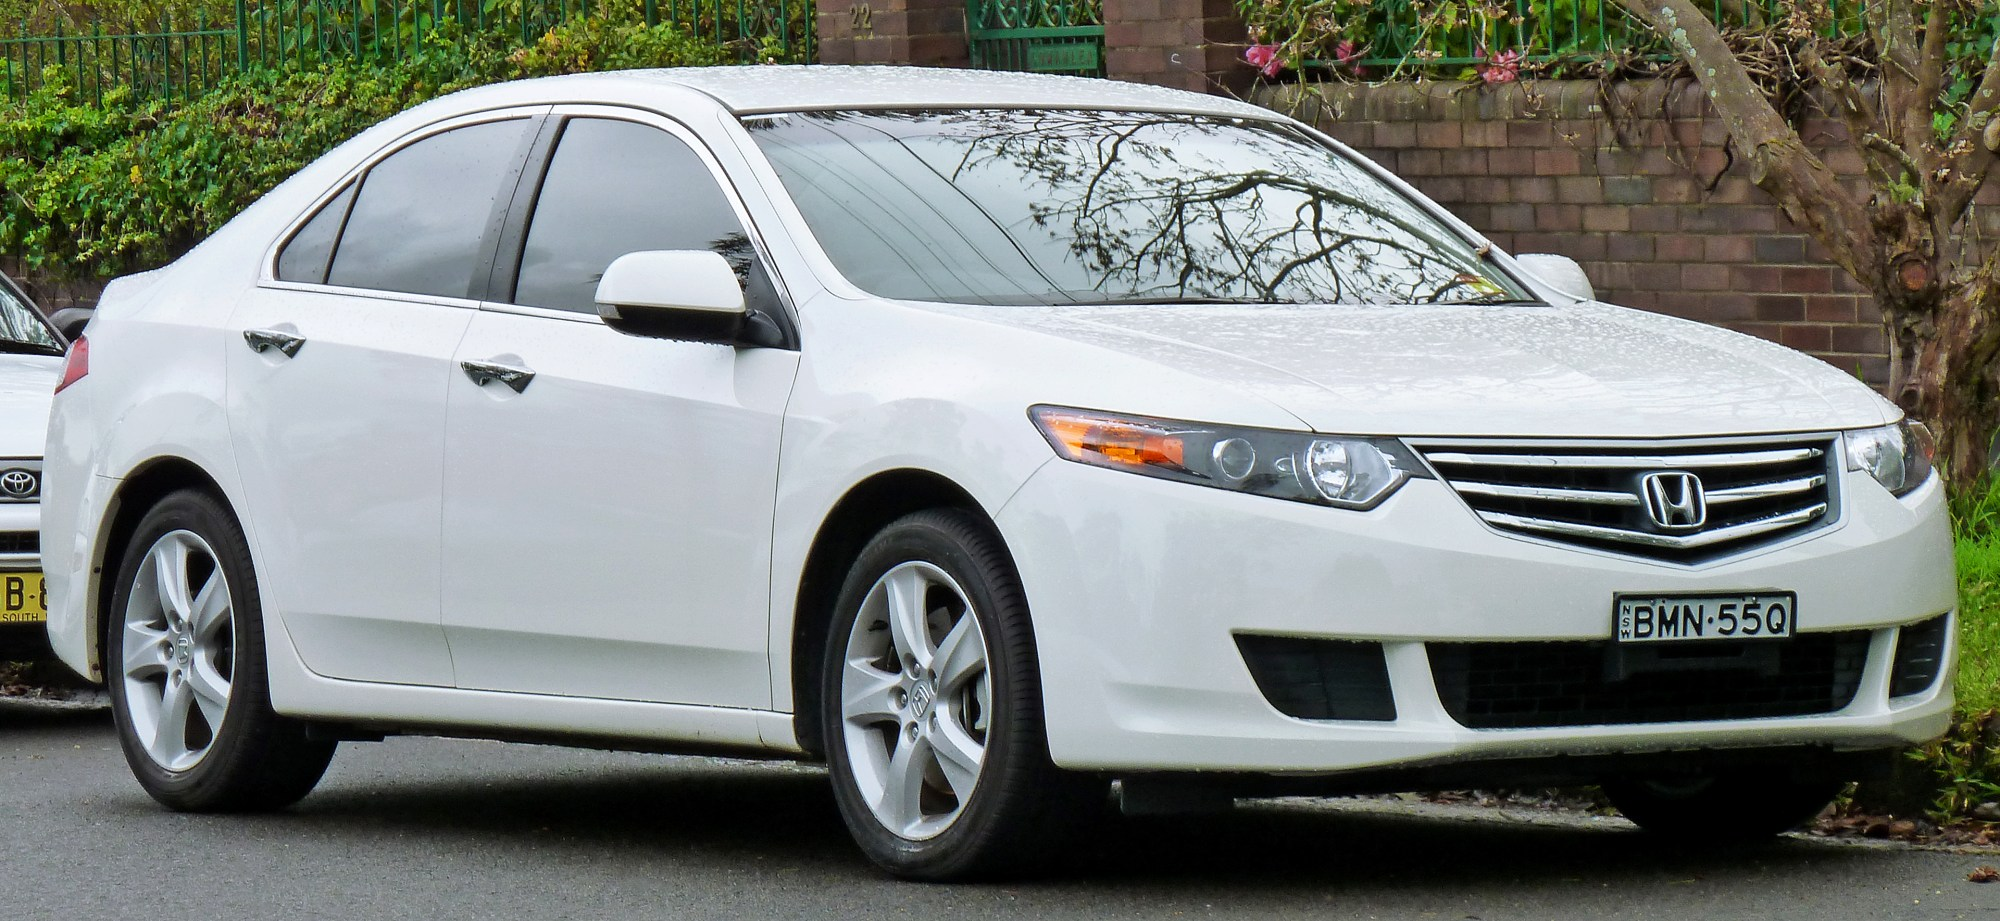 hight resolution of honda accord japan and europe eighth generation